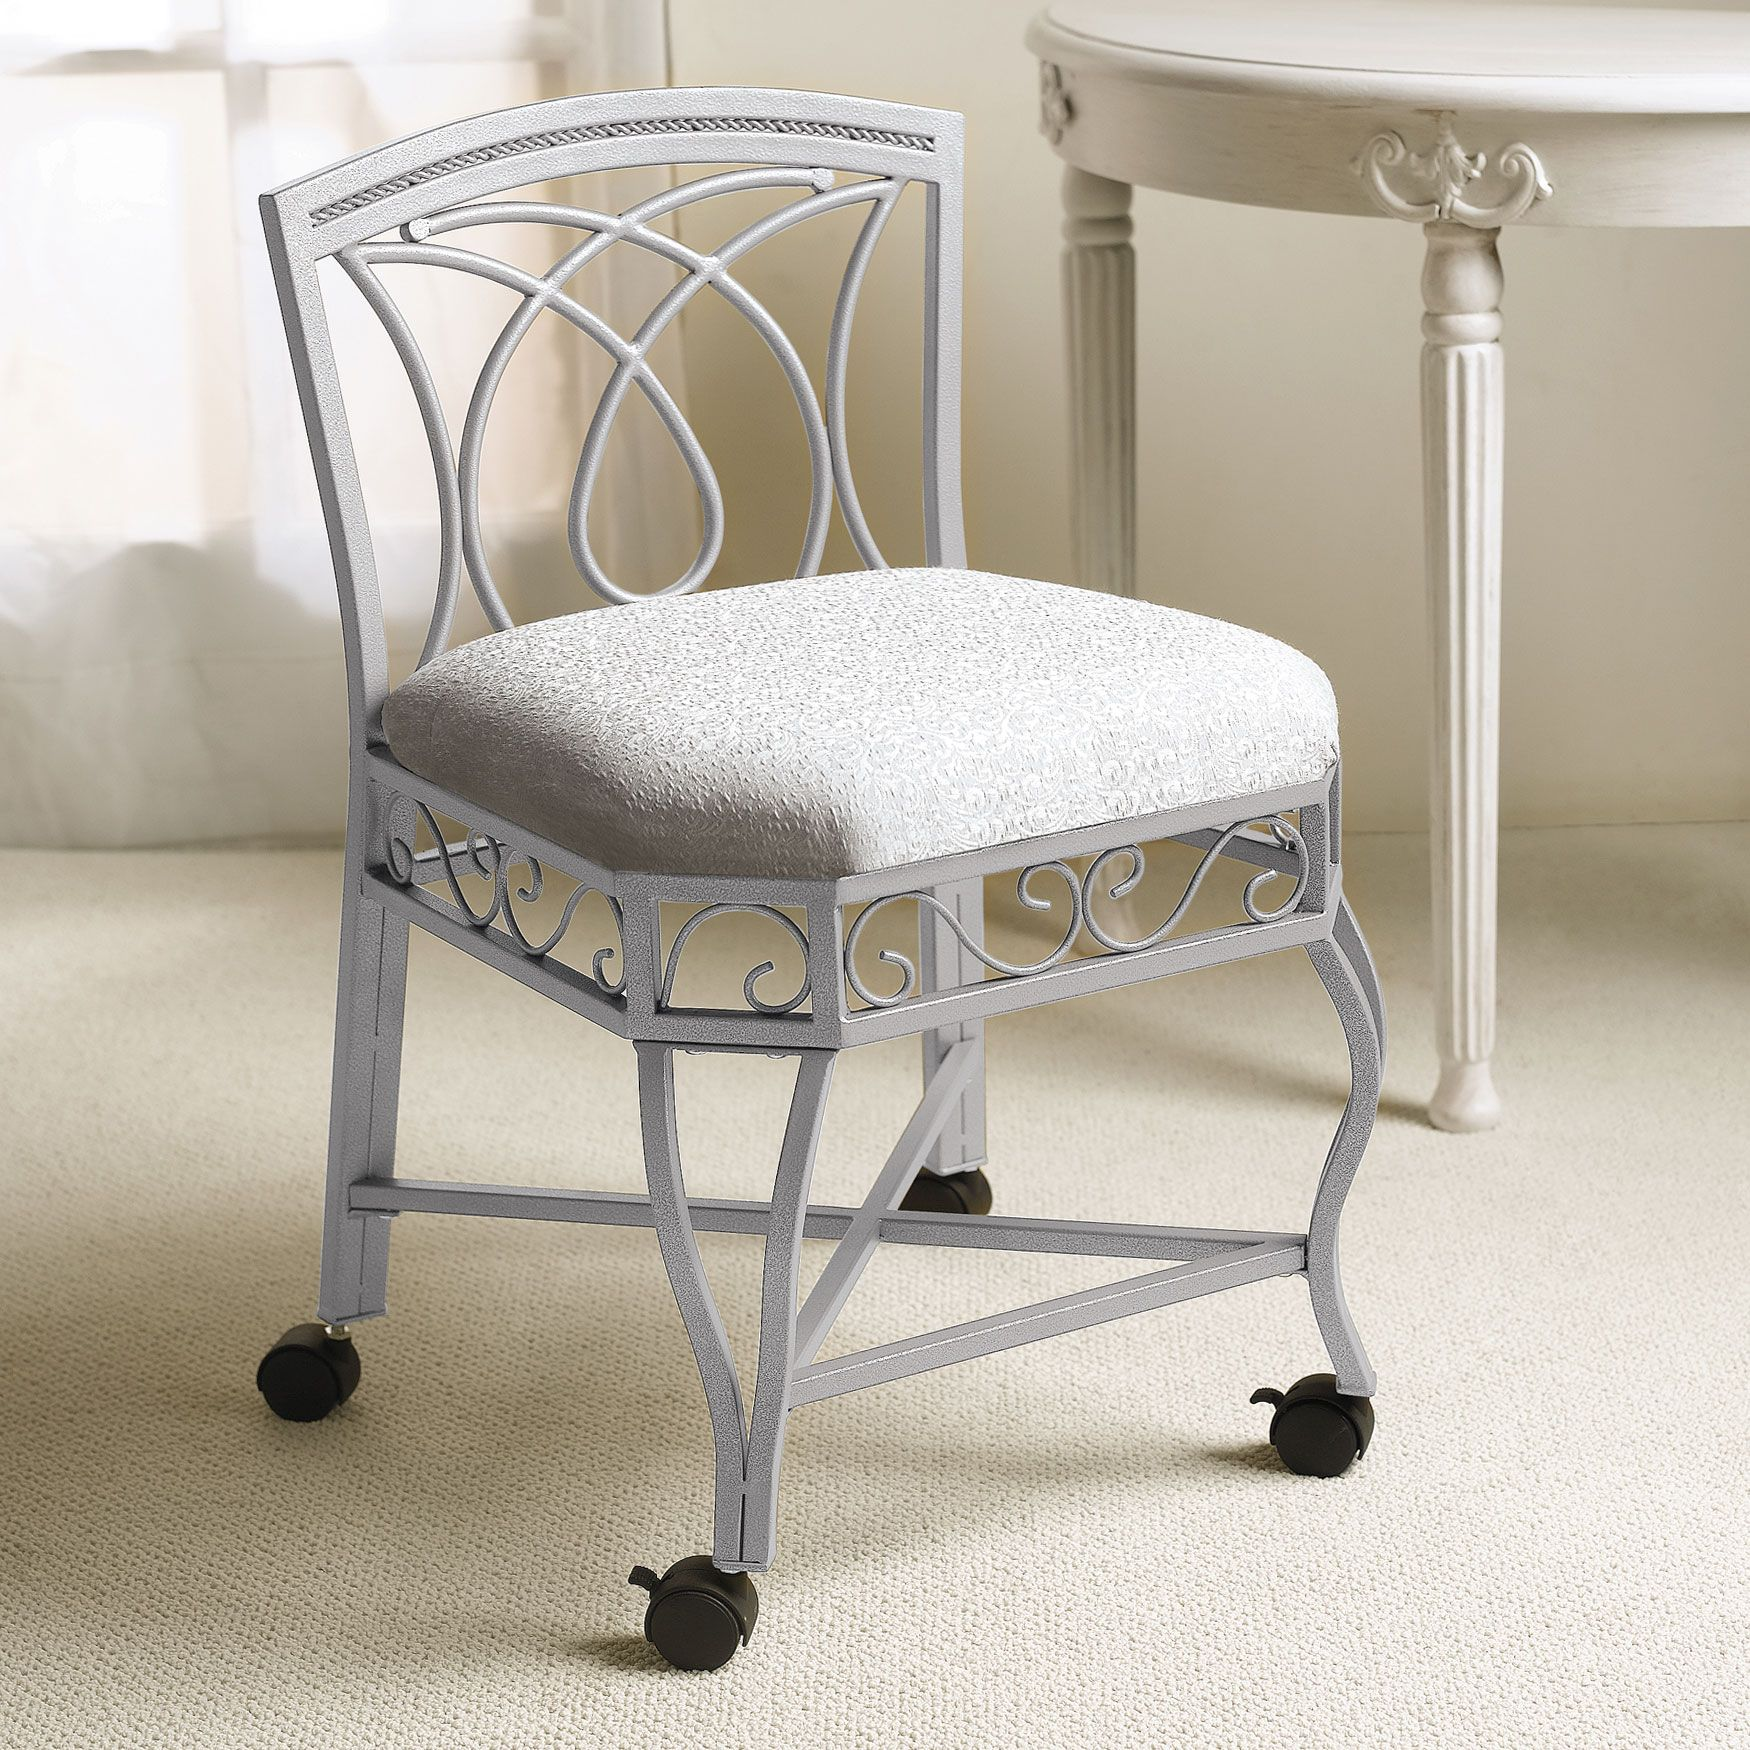 Bathroom Vanities Simple Elegant Vanity Chairs With Backs And Wheels White Lace Cushion Soft Gray Frame Stools Bench